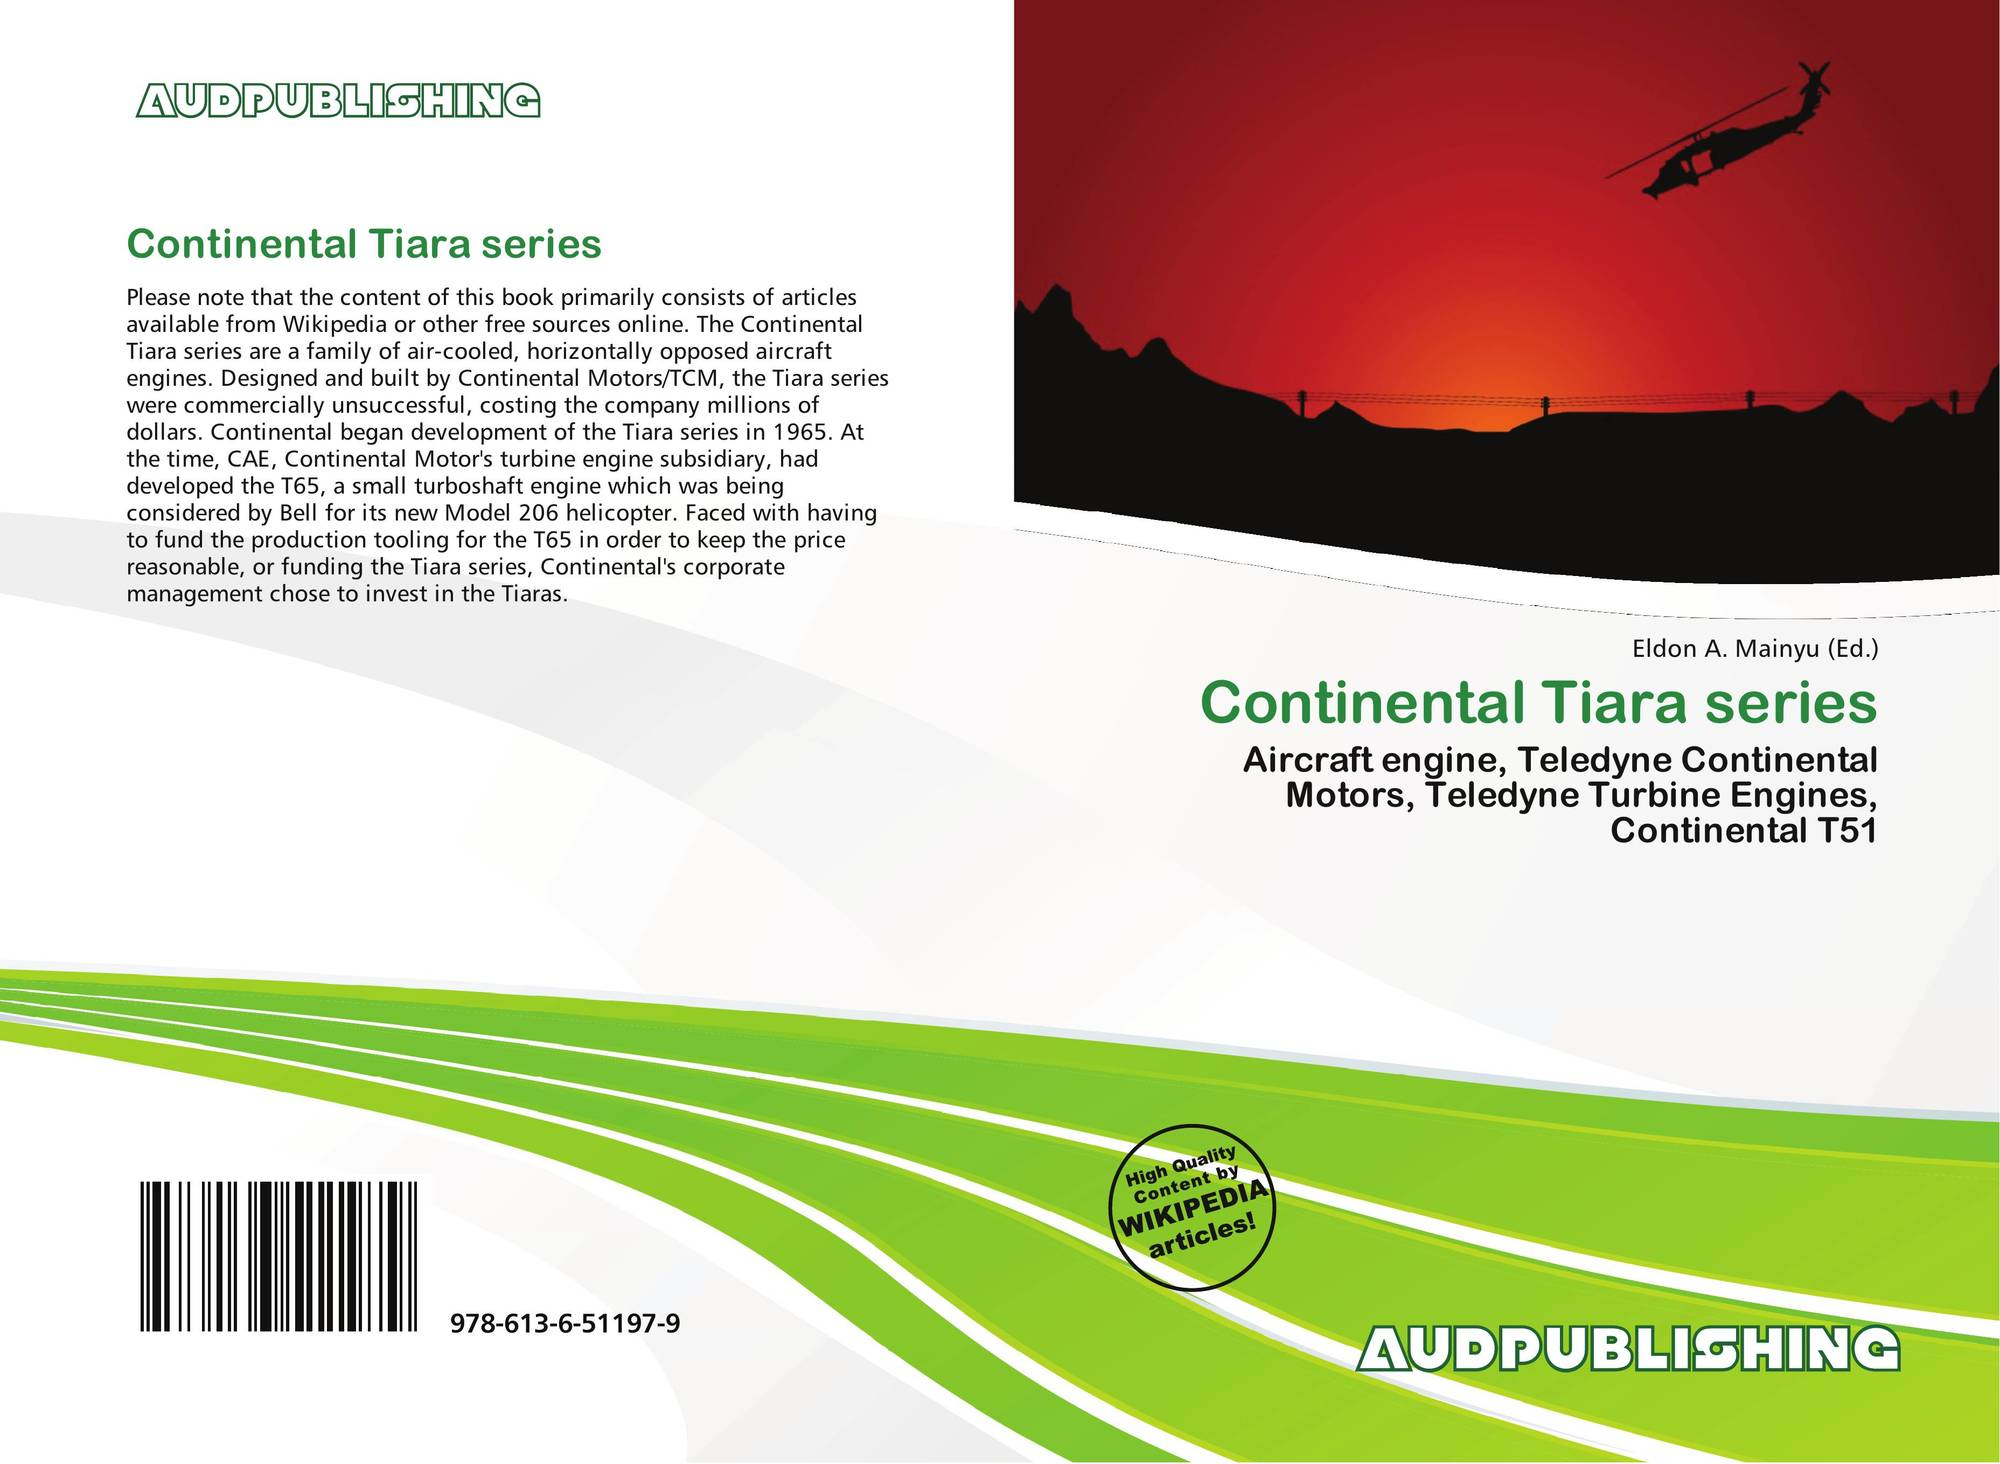 Continental Tiara series, 978-613-6-51197-9, 6136511975